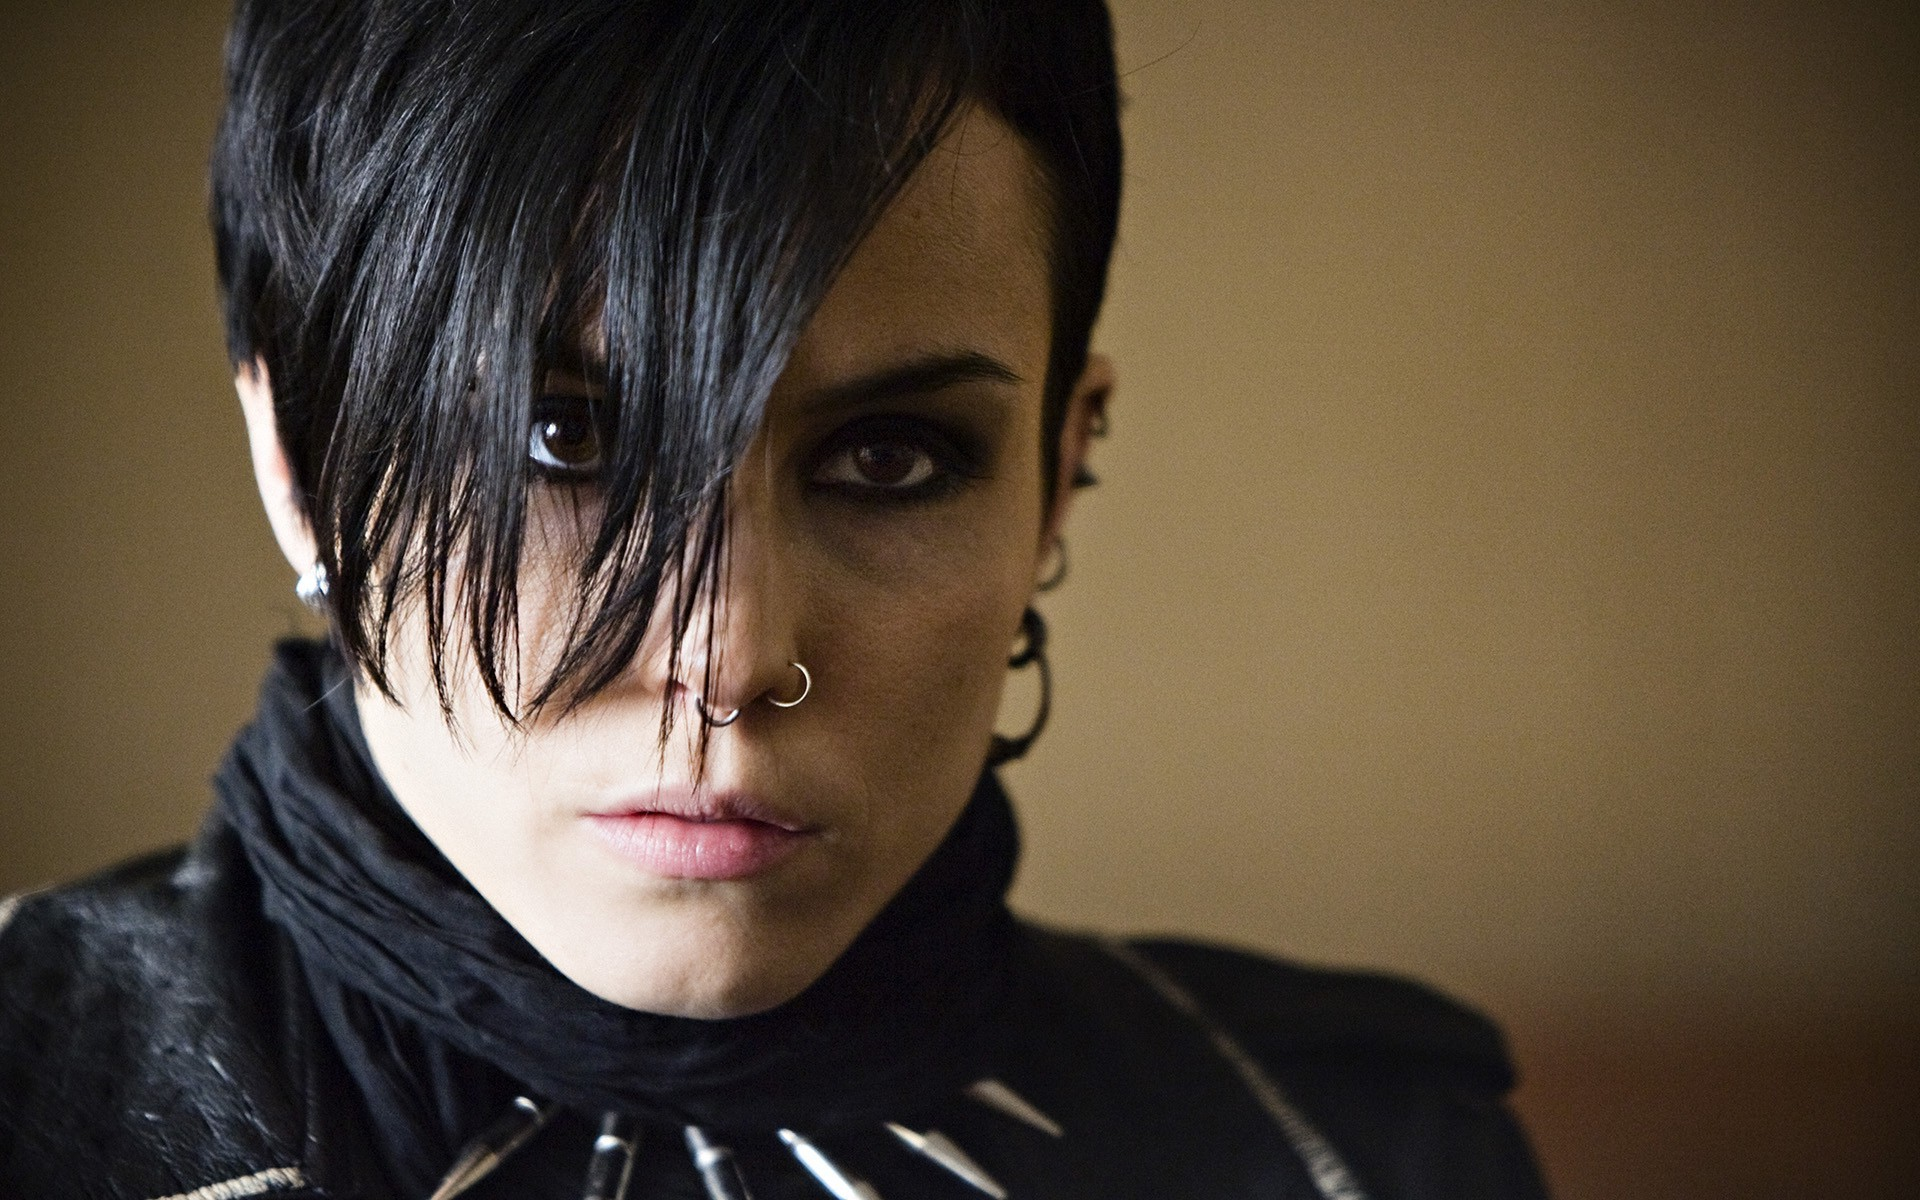 Noomi Rapace on Leaving The Girl With the Dragon Tattoo Behind   Den of Geek